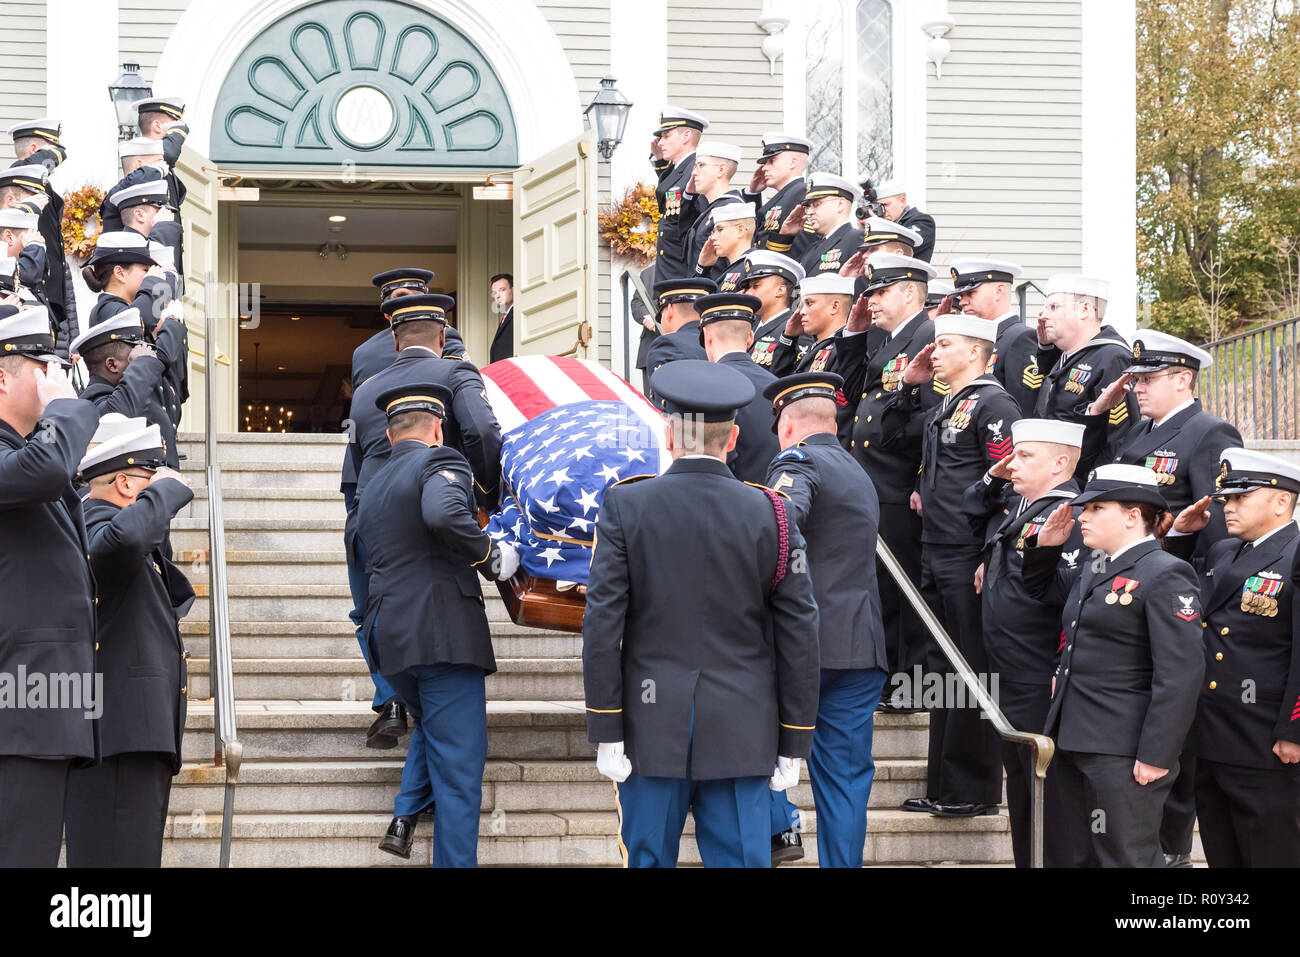 Military Funeral Honors Team of the Massachusetts Army National Guard carries the flag draped casket of Medal of Honor recipient Thomas J. Hudner. - Stock Image